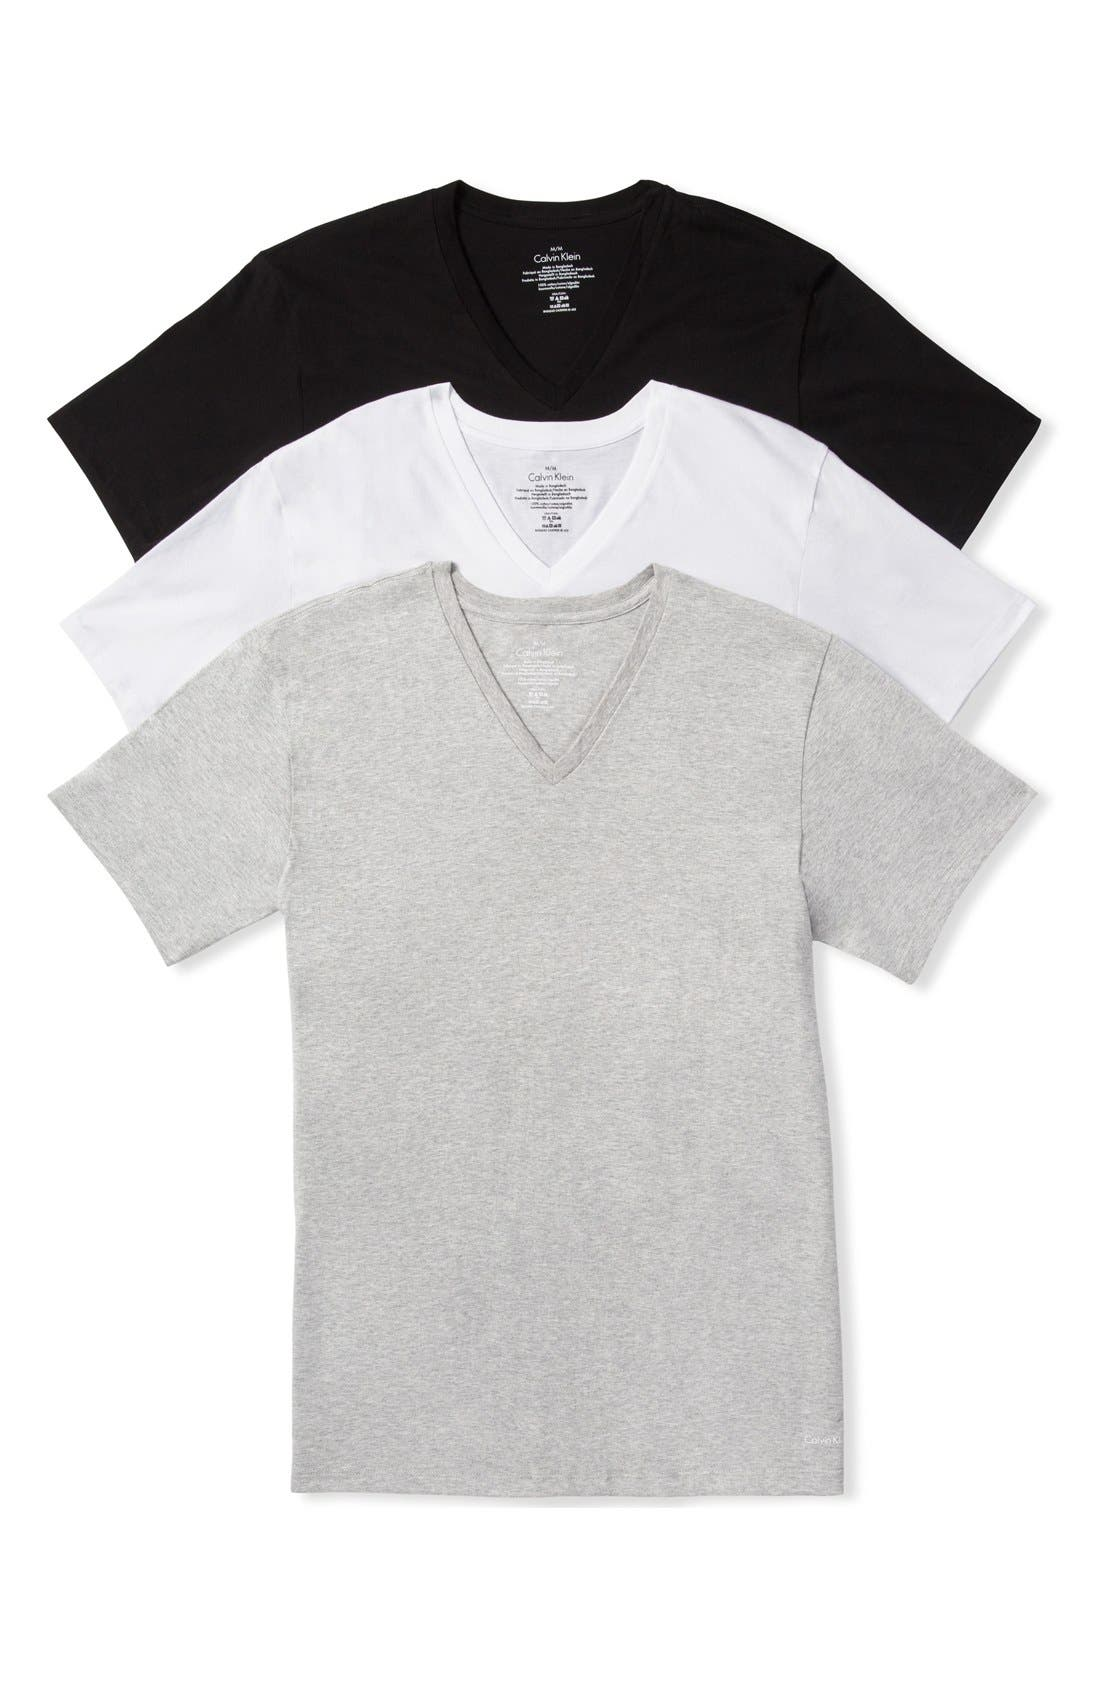 Alternate Image 1 Selected - Calvin Klein Assorted 3-Pack Classic Fit Cotton V-Neck T-Shirt